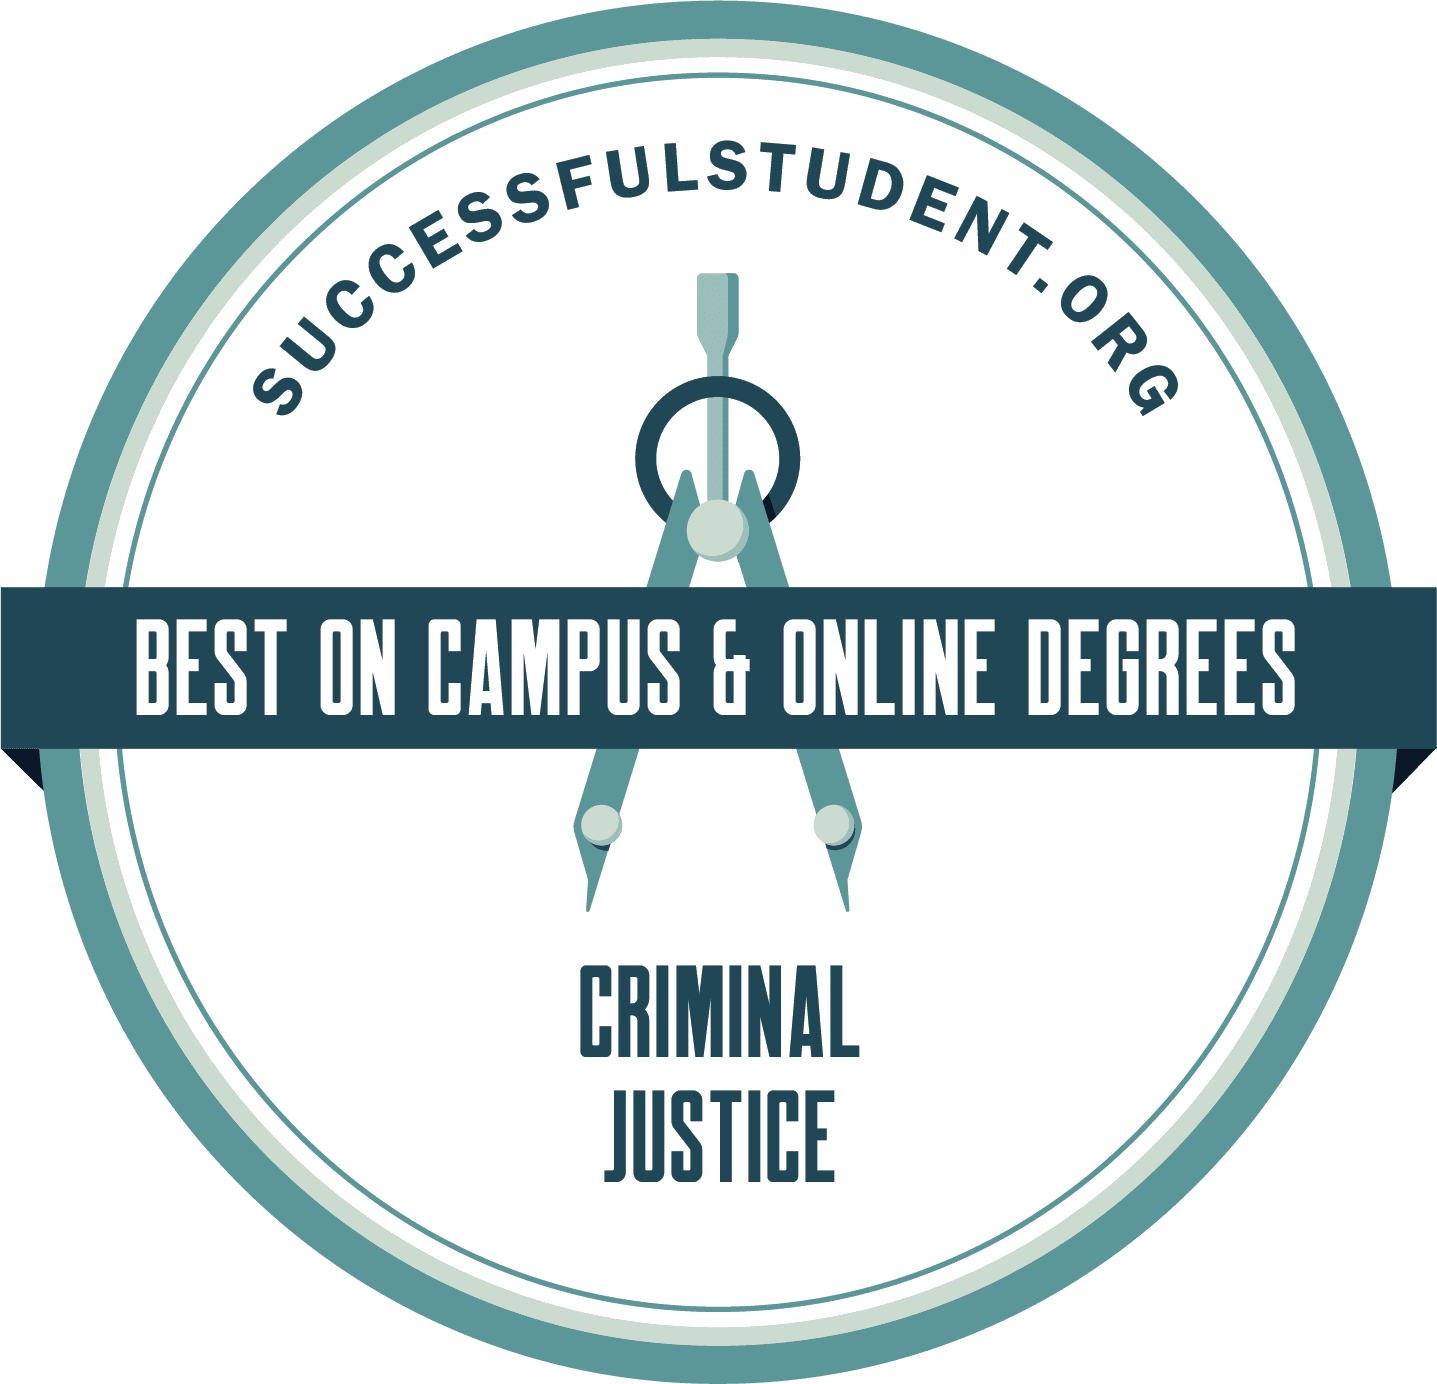 Criminal Justice Degree: The 50 Best Programs's Badge